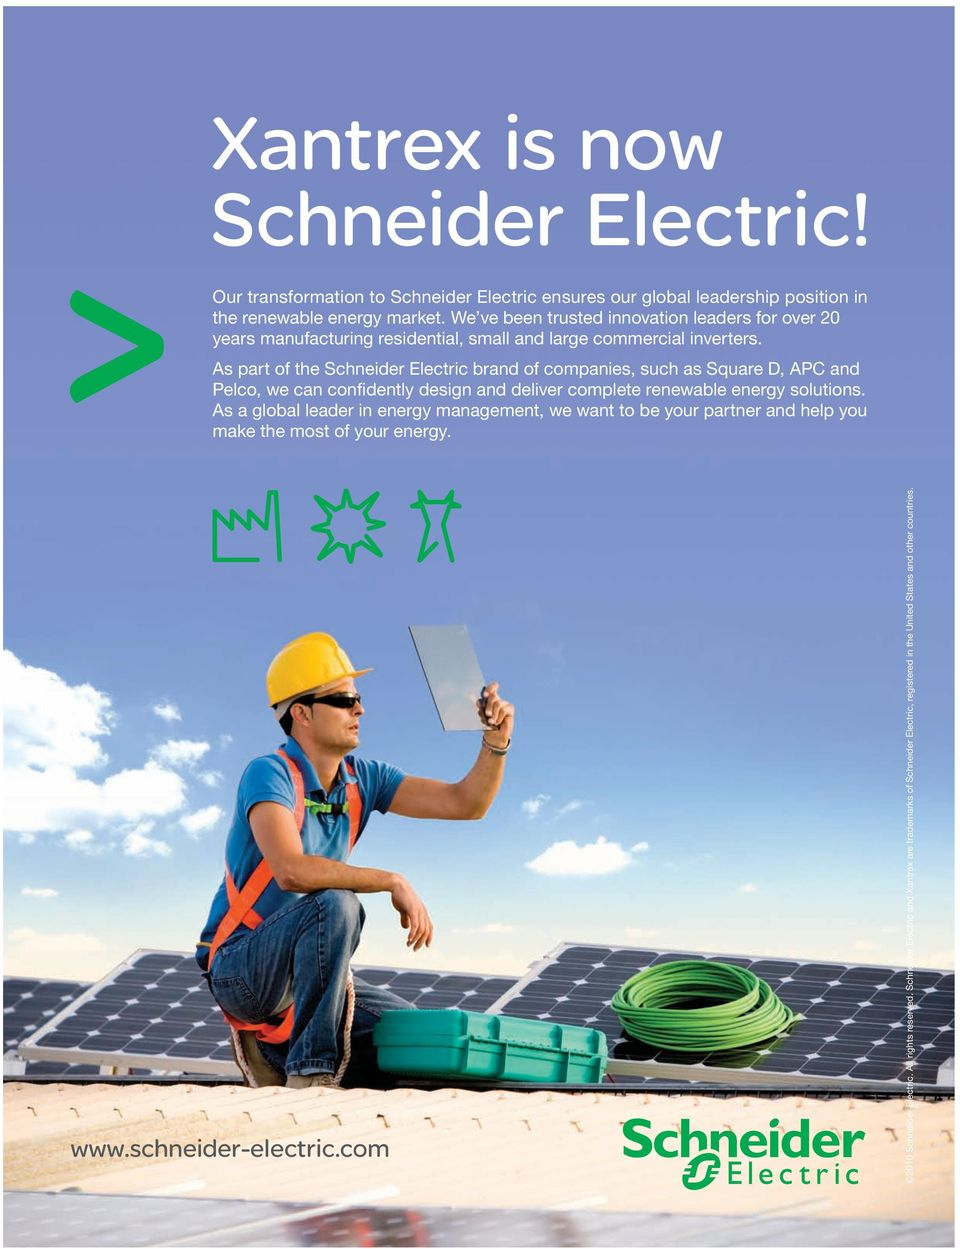 As part of the Schneider Electric brand of companies, such as Square D, APC and Pelco, we can confidently design and deliver complete renewable energy solutions.